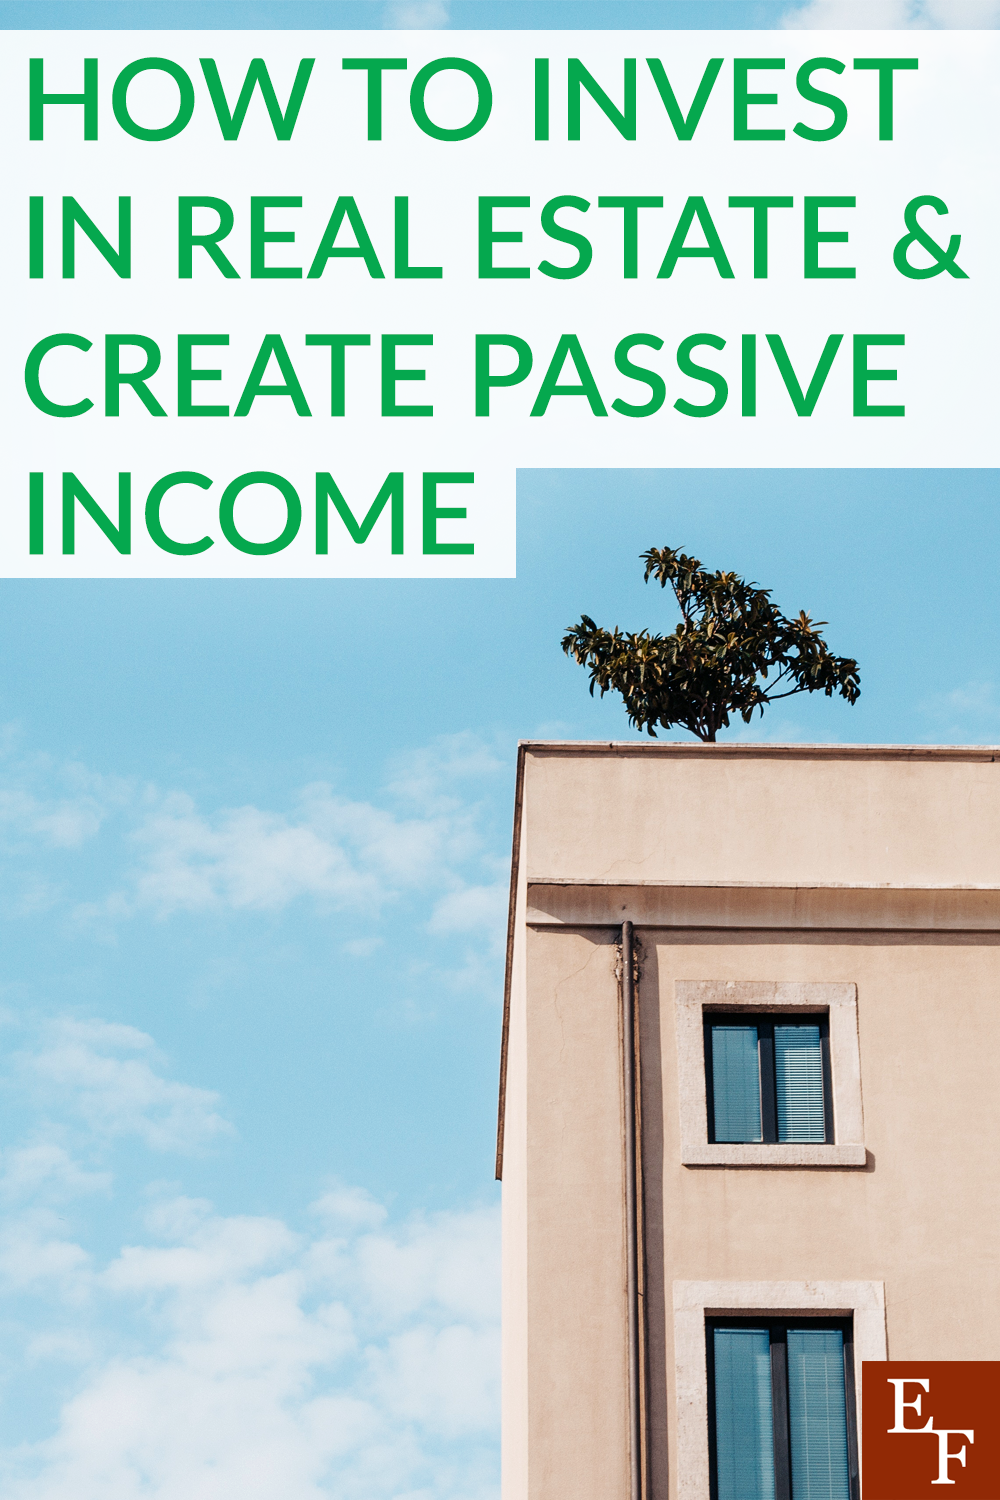 When it comes to creating passive income, there are a lot of different ways to go about it. But, one of the best ways is by investing in real estate.